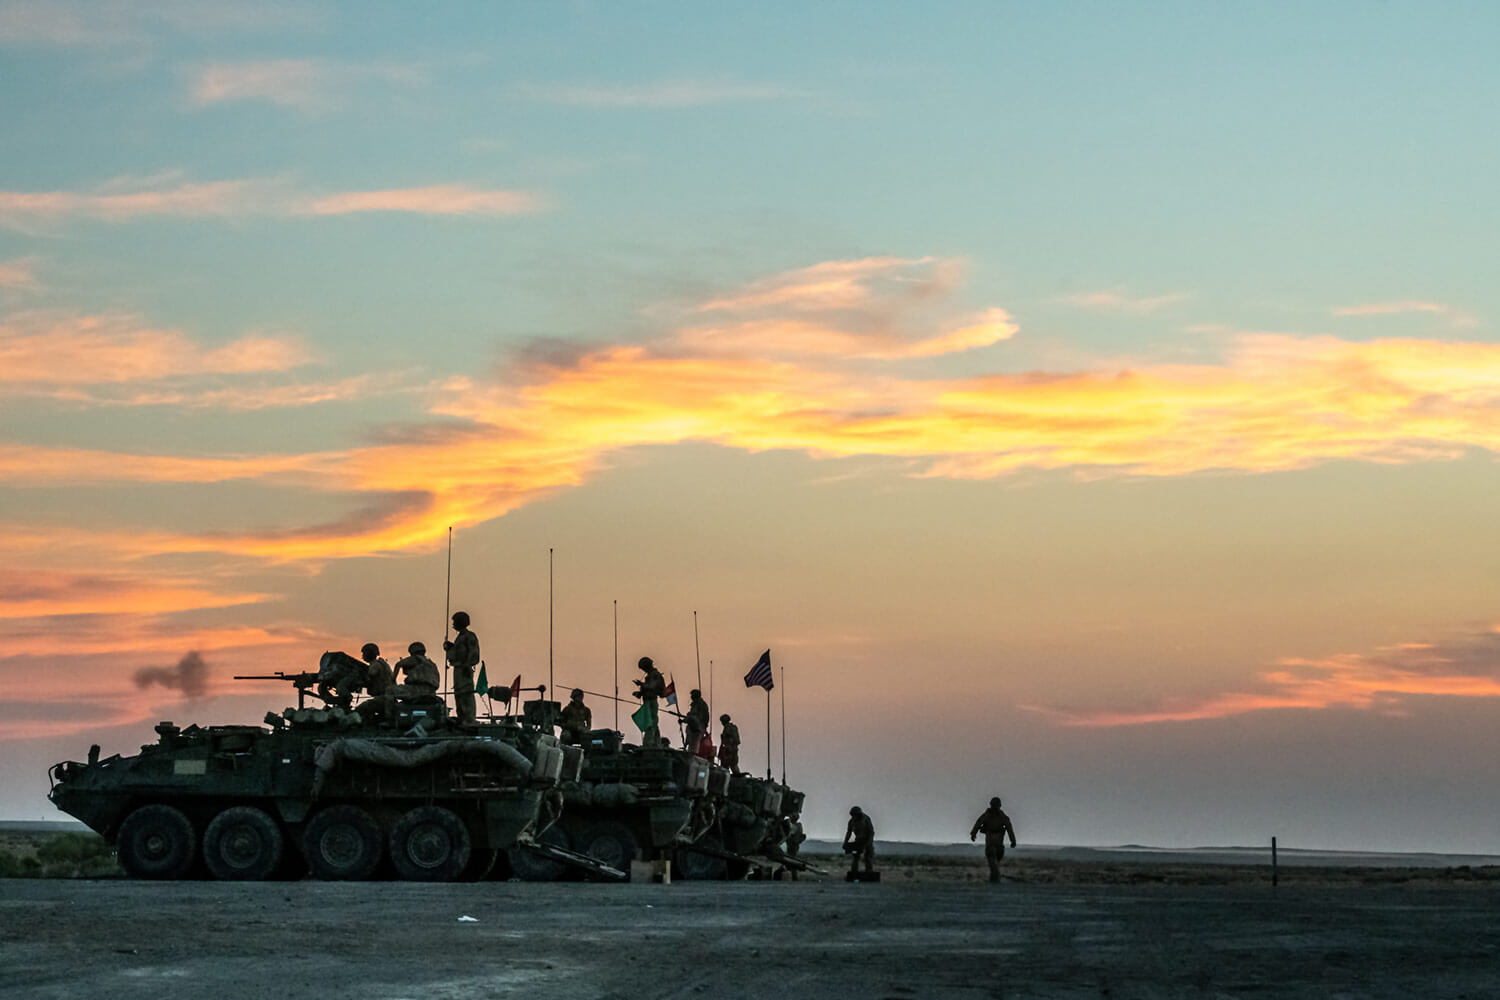 Oregon Army National Guard Soldiers with 1st Squadron, 82nd Cavalry Regiment, conduct live-fire exercises late into the evening during their 2018 annual training (AT) at Orchard Combat Training Center near Boise, Idaho. The 2018 AT rotation marked the first time the 1-82nd Cavalry Regiment held a full series of live-fire qualifications using their new Stryker vehicles, which the unit received less than two years ago. Oregon Army National Guard photo by SSG Zachary Holden